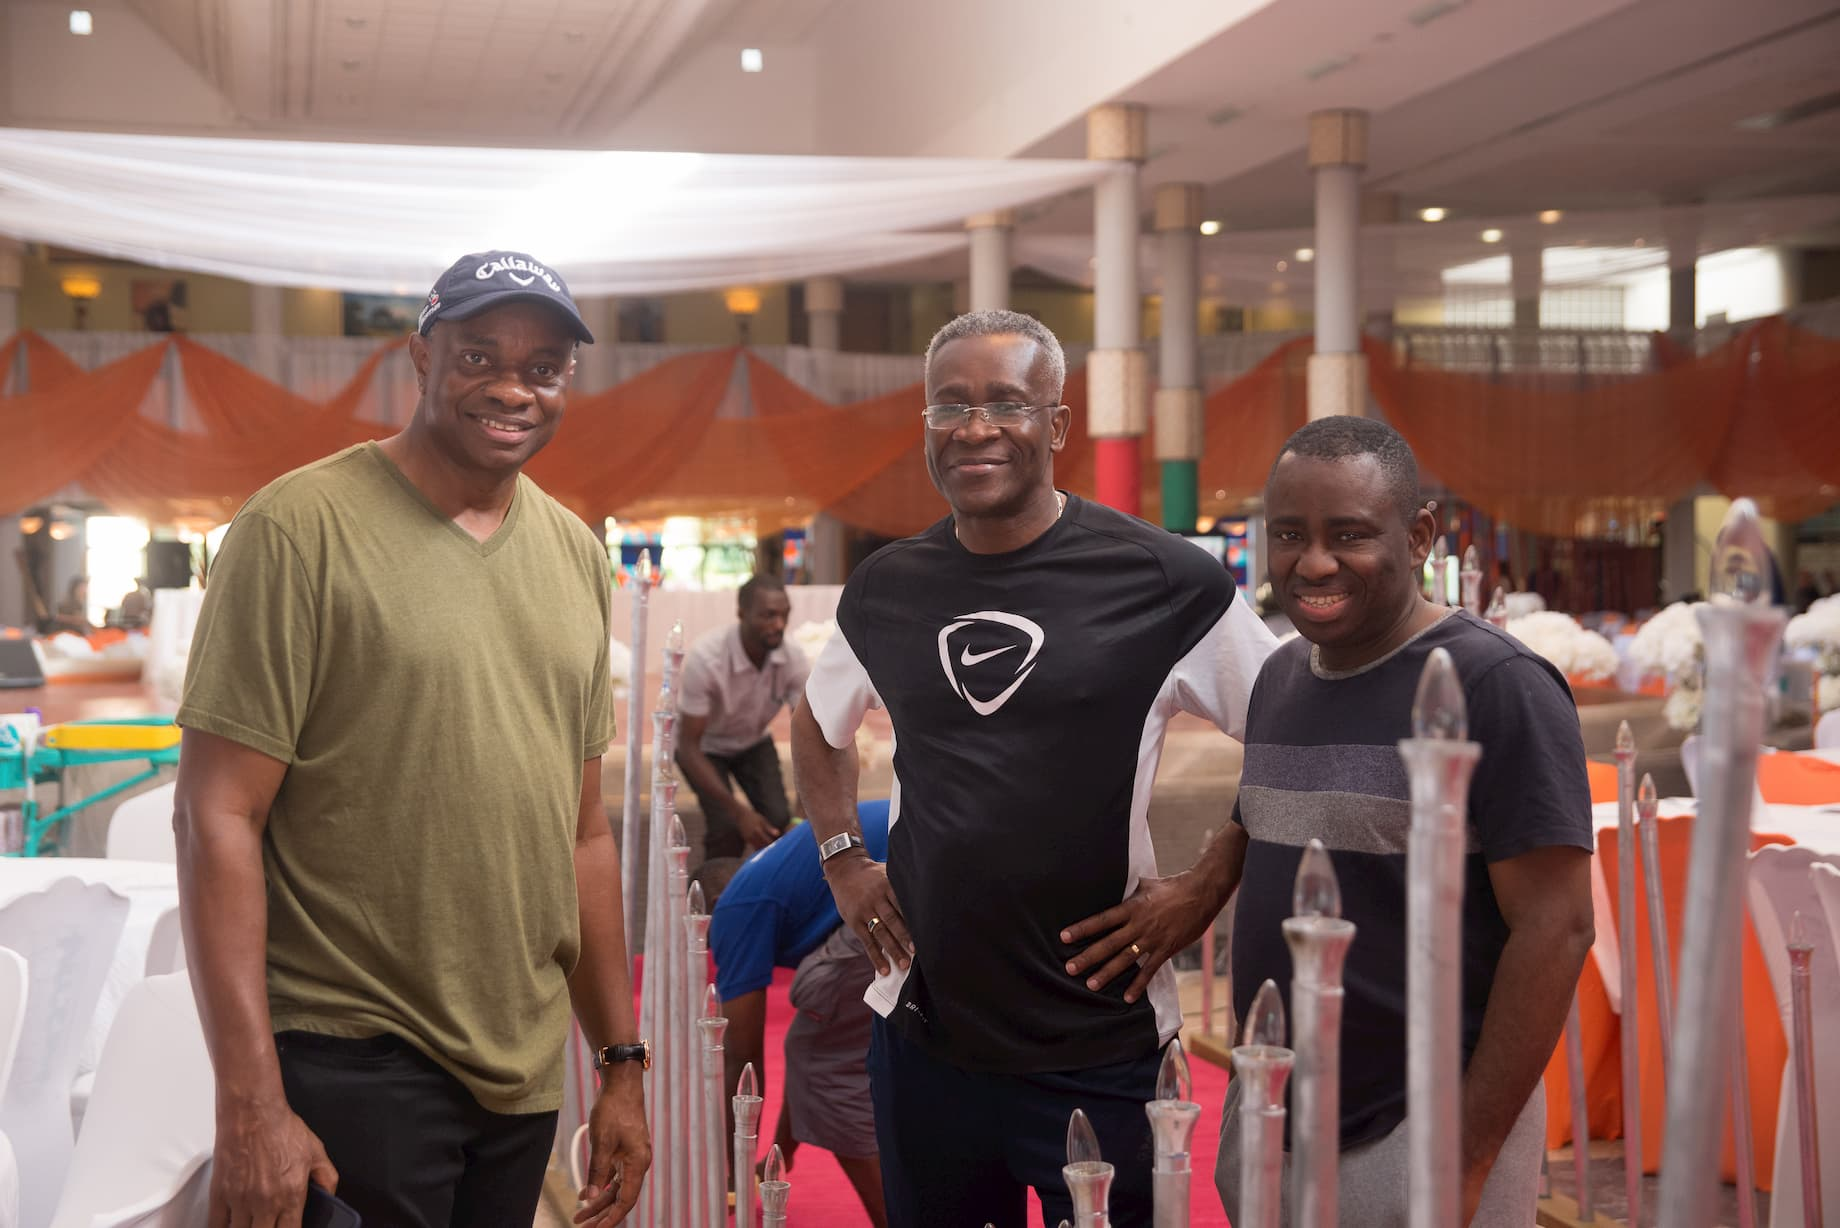 Mr. Inoyo, Mr. Aniekan Etiebiet & Dr. George Akpan before the event, helping to set up